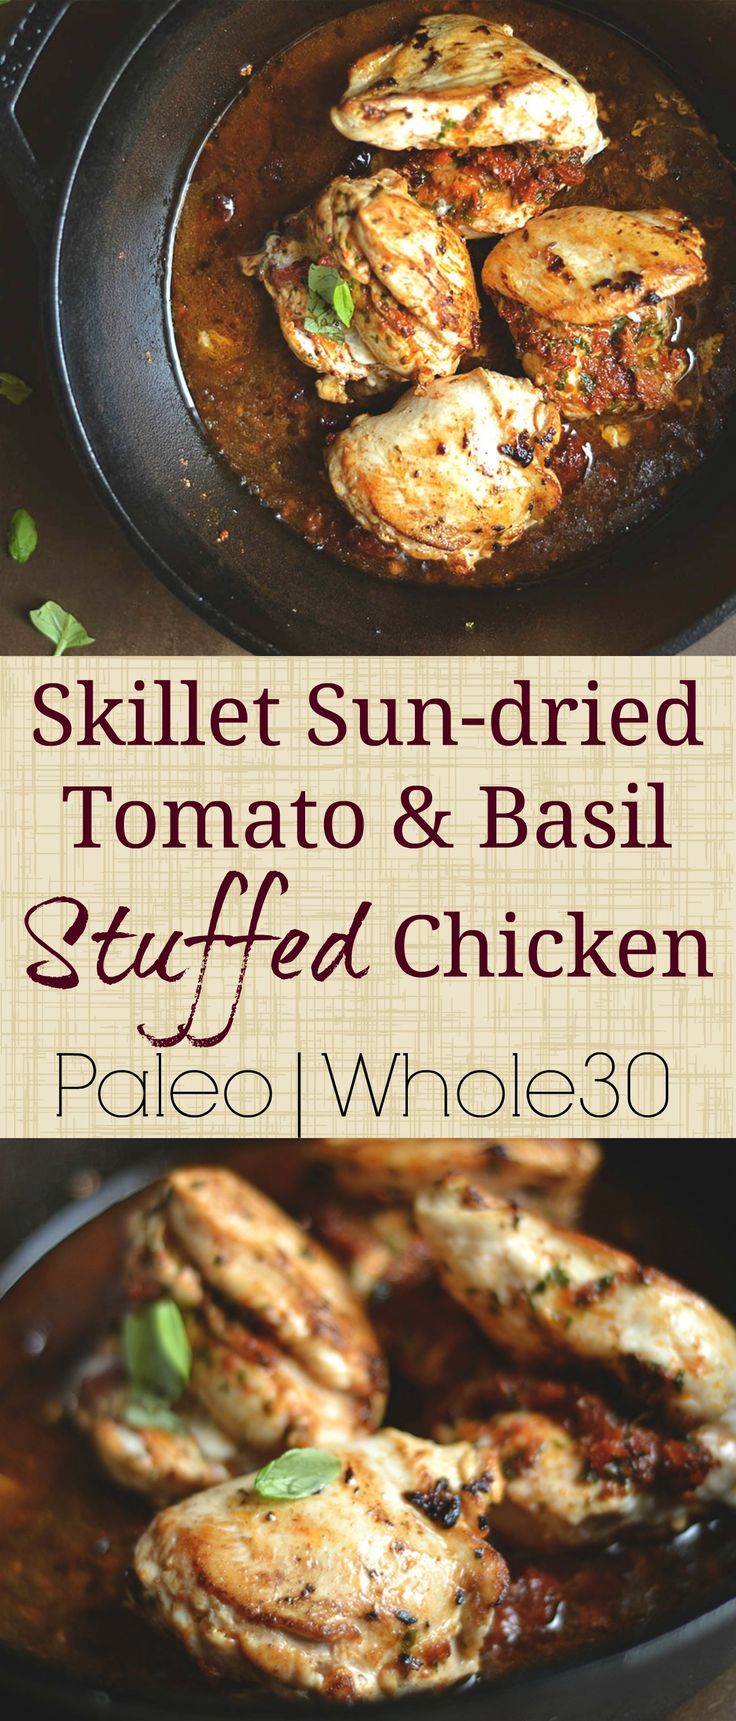 Simple weeknight chicken dinner stuffed a sun-dried tomato & basil paste and topped with the most delicious sauce!